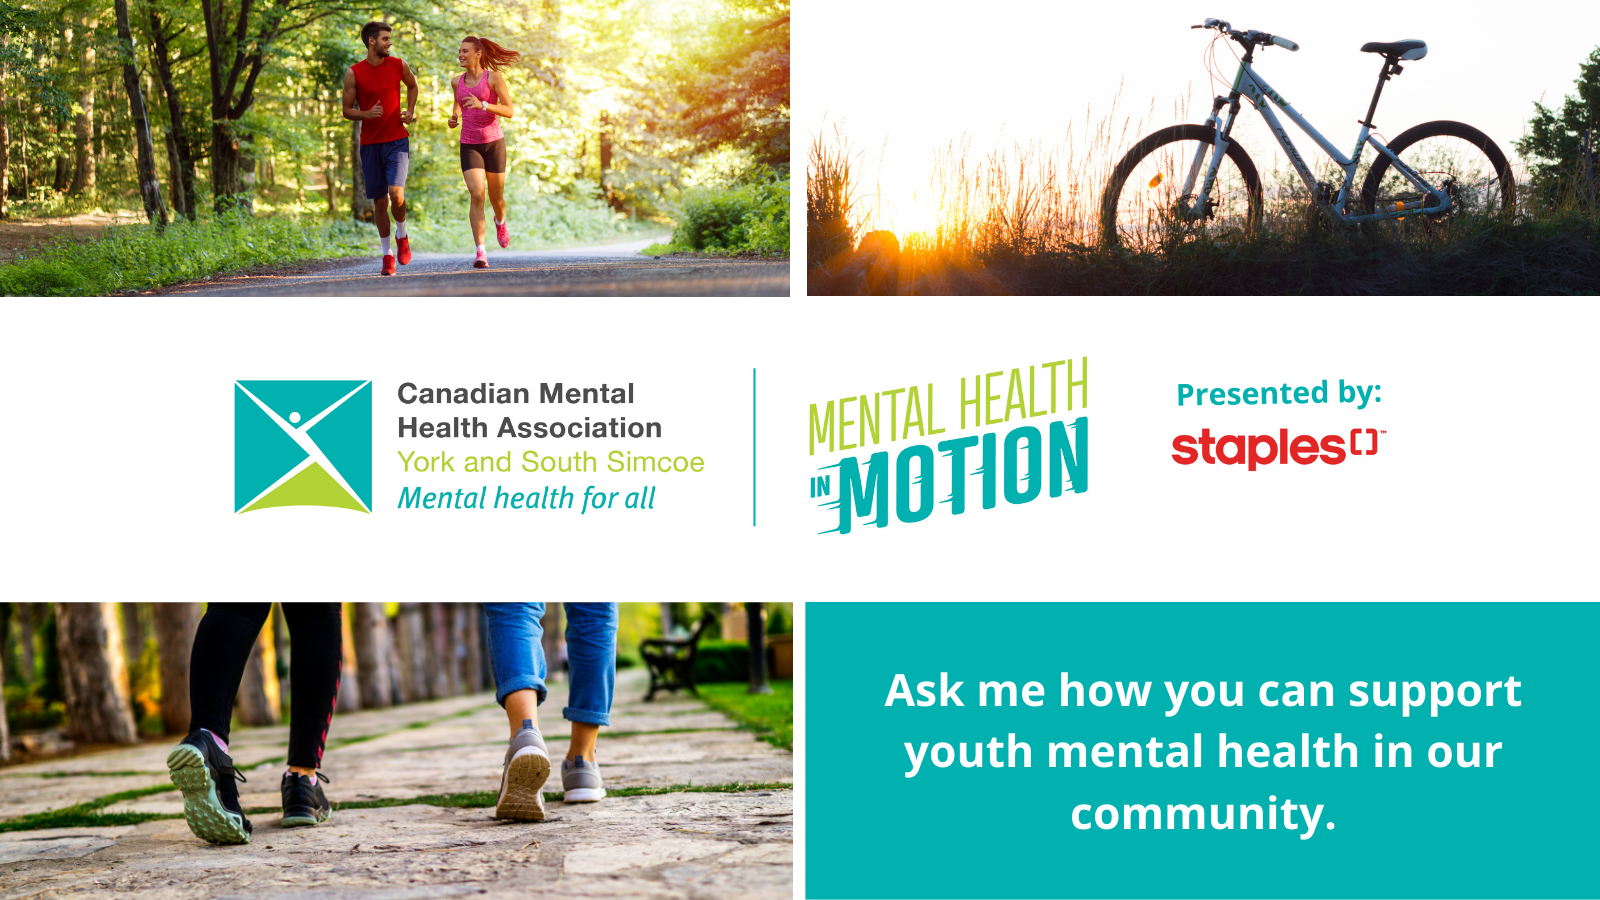 Mental Health in Motion: Social Media and Fundraising Assets